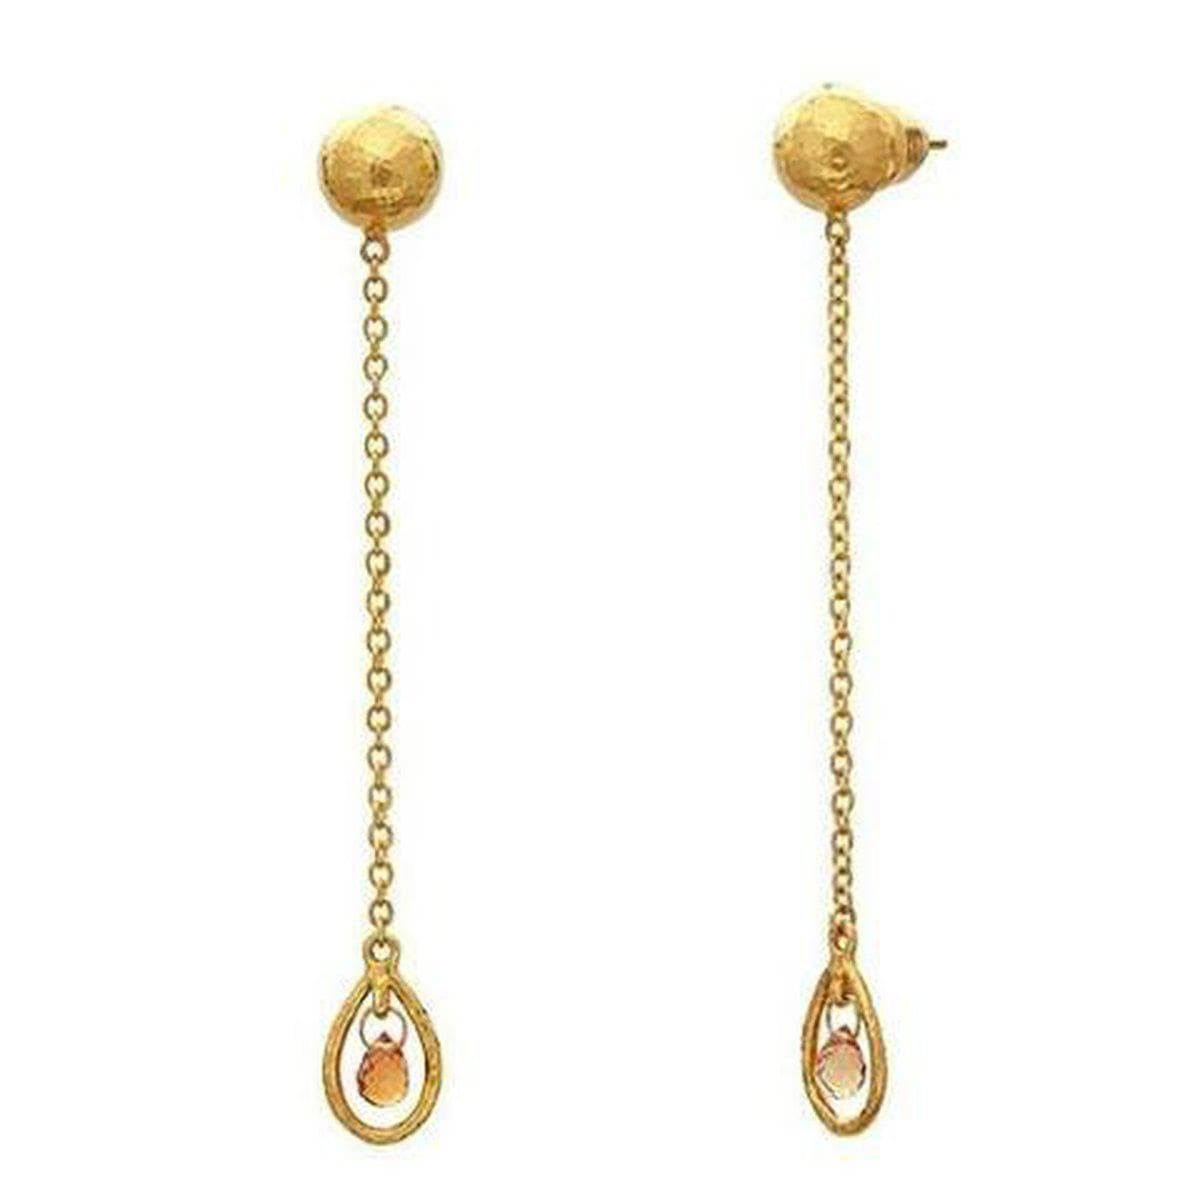 Delicate Hue 24K Gold Sapphire Earrings - E8-FSB-1FR-CH4-1OR-GURHAN-Renee Taylor Gallery